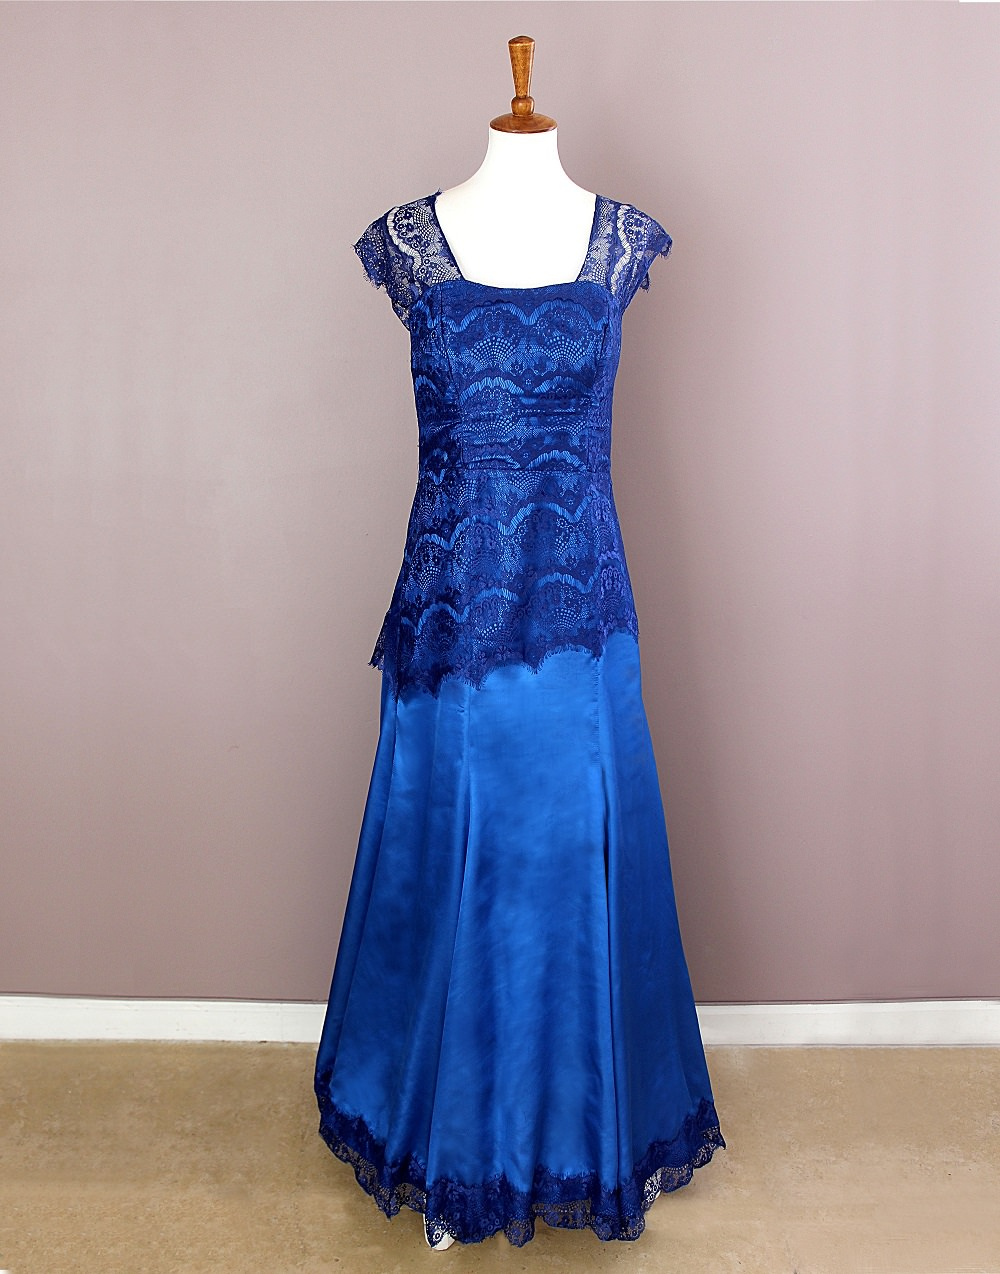 blue-evening-gown-diana4